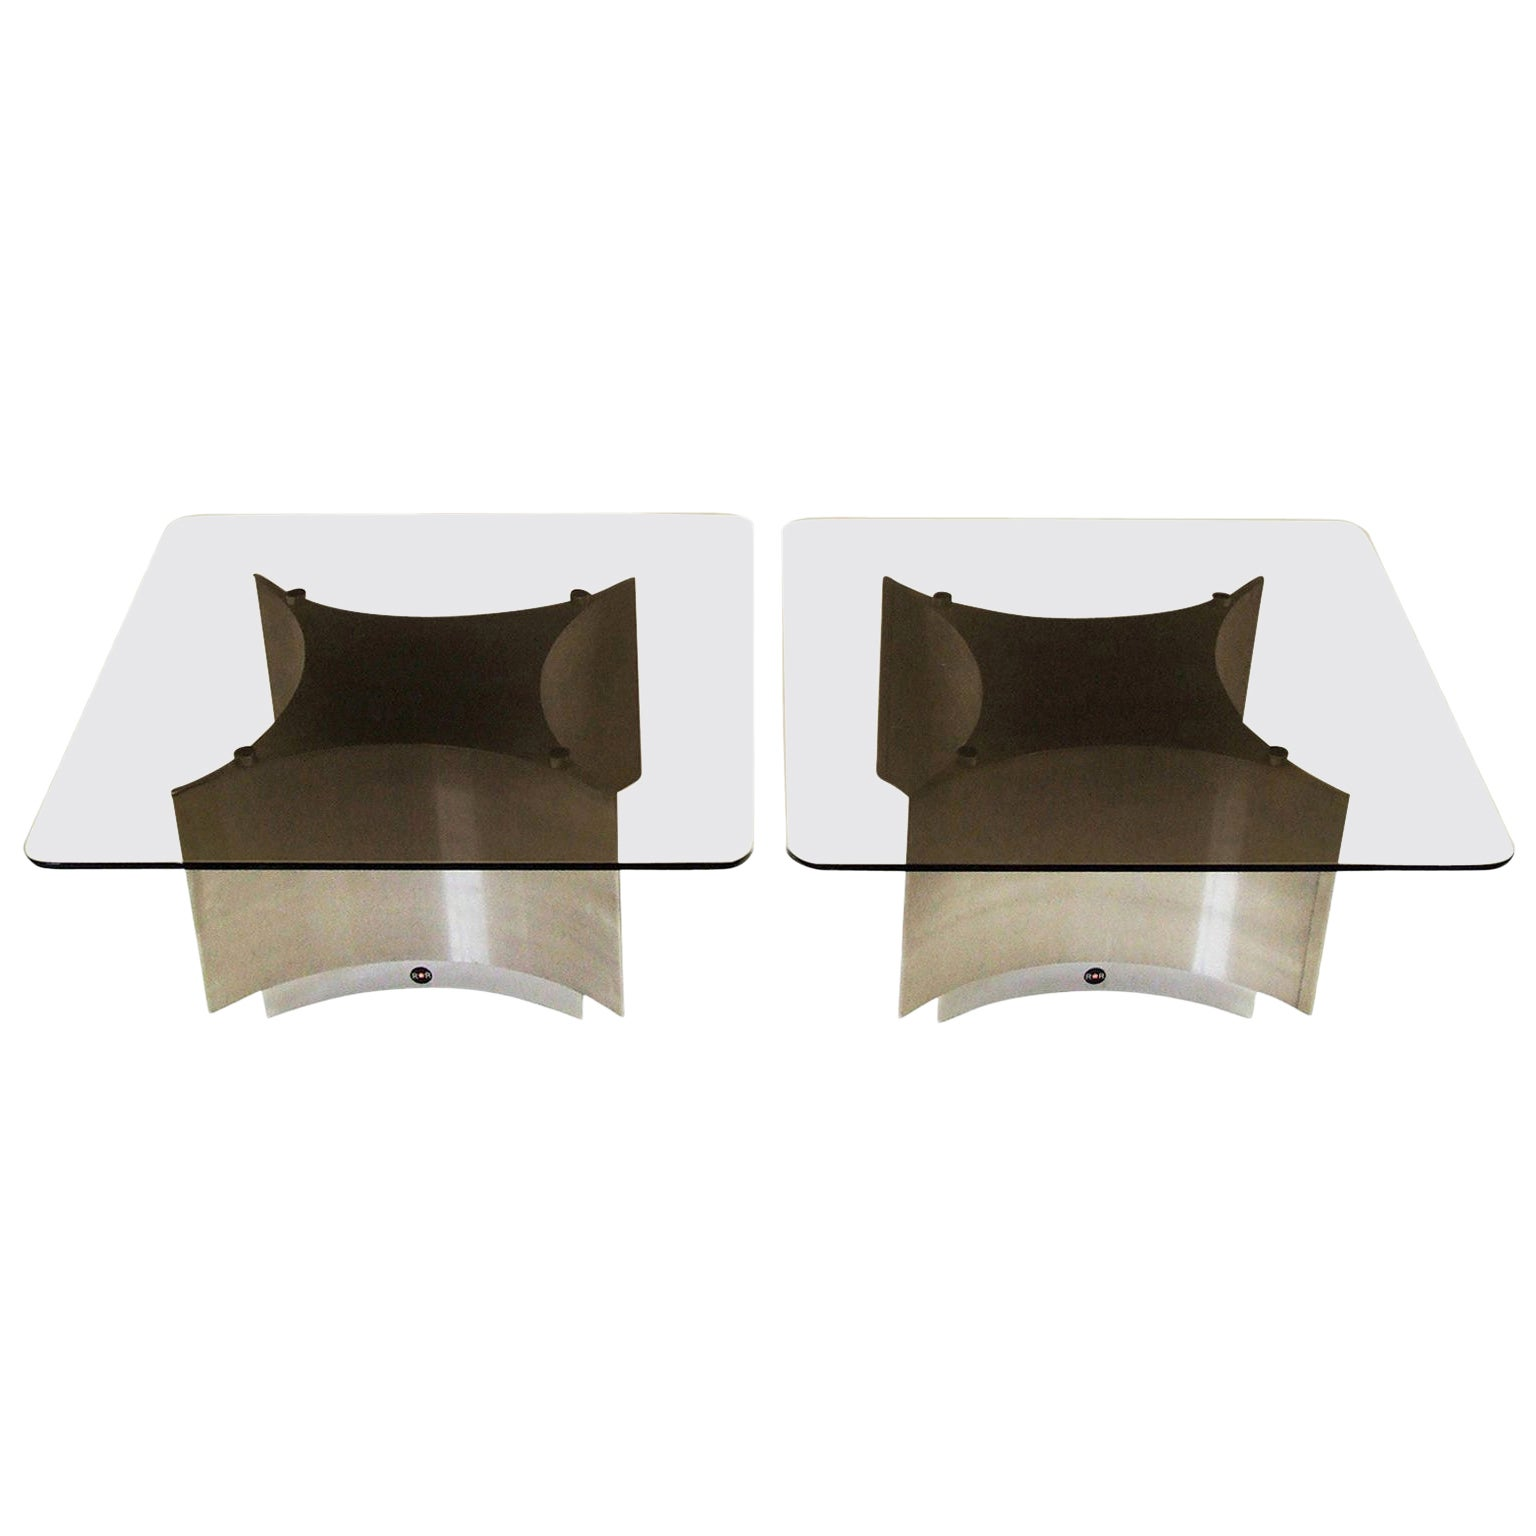 Pair of 1970s Coffee Tables by Ringo Starr for ROR Aluminum, Chrome and Glass